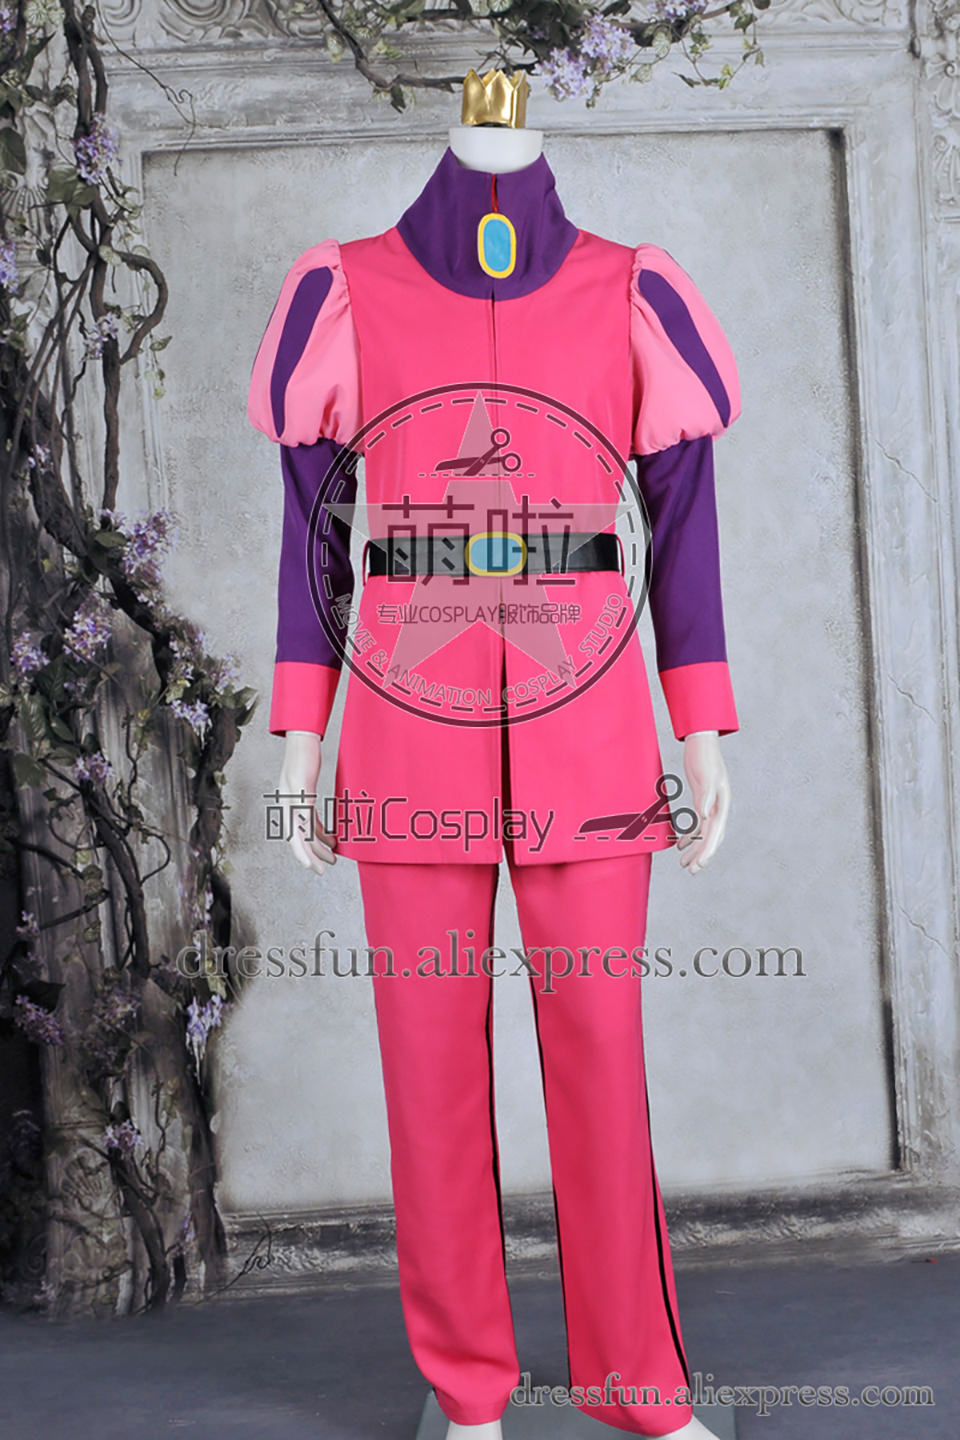 Adventure Time Cosplay Prince Gumball Costume New Full Set Pink Uniform Outfits: